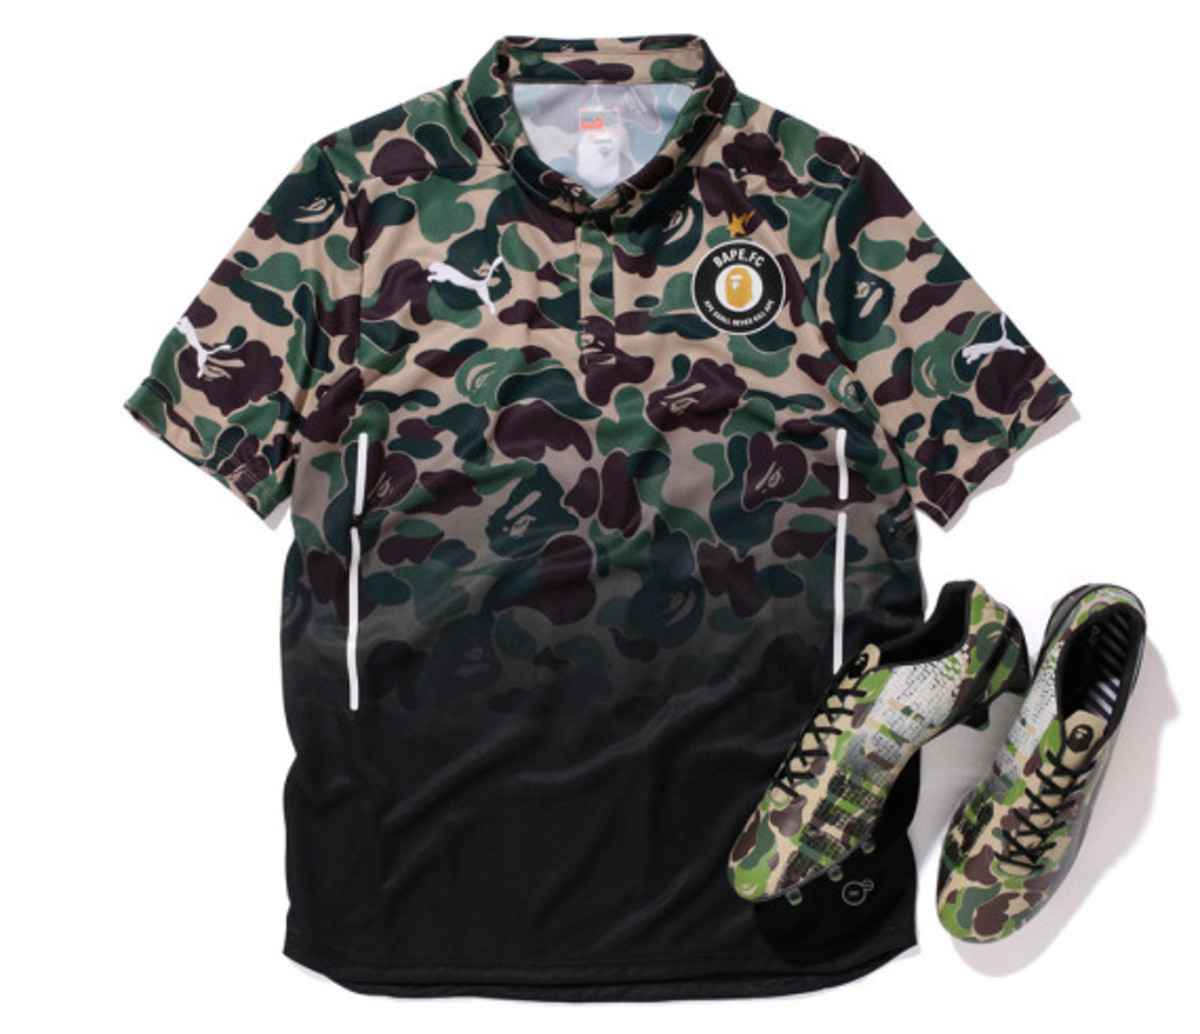 a-bathing-ape-puma-bape-fc-capsule-collection-005